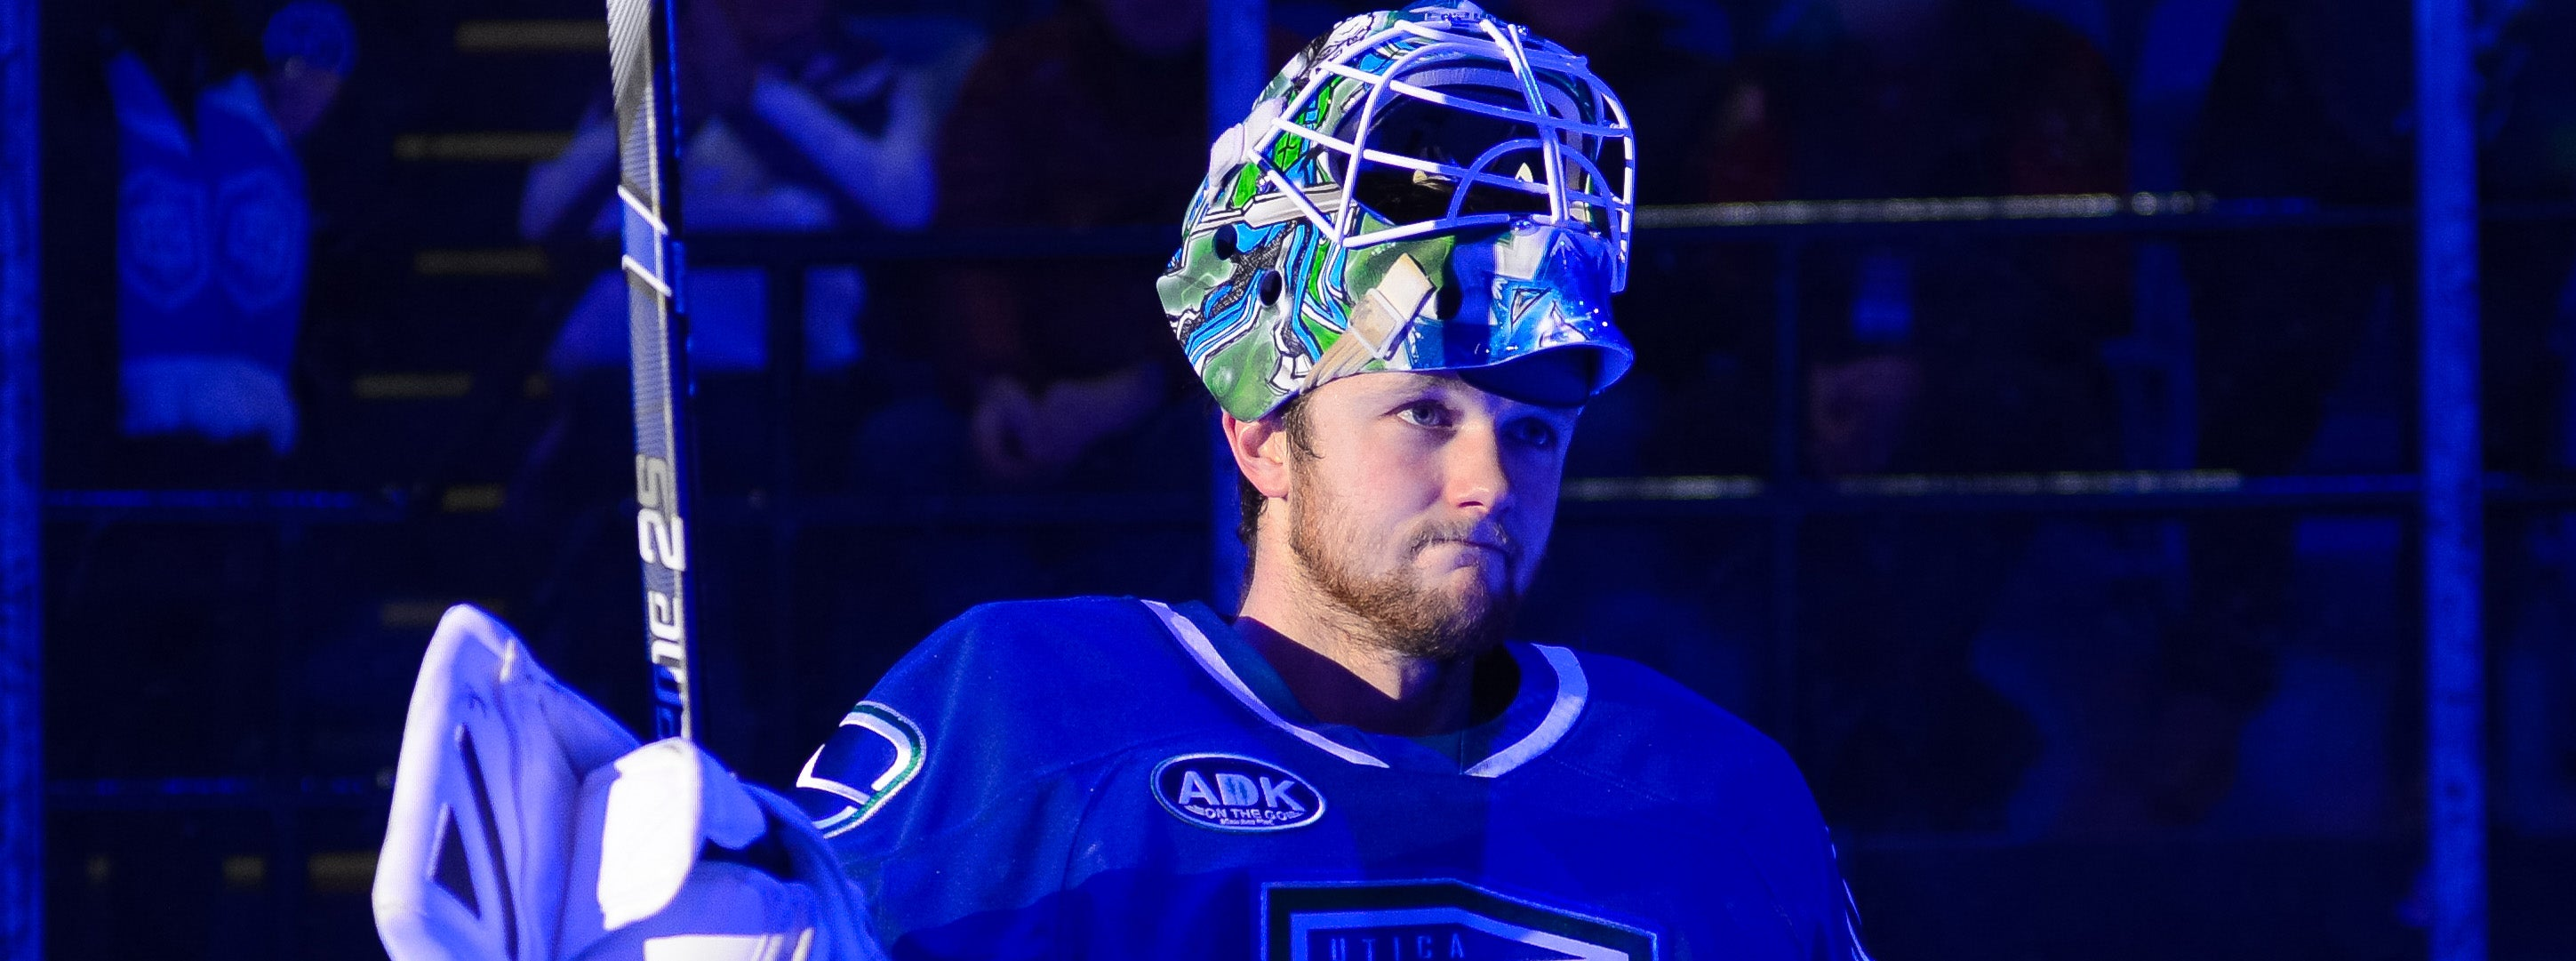 YEAR IN REVIEW: DEMKO'S FAREWELL TOUR